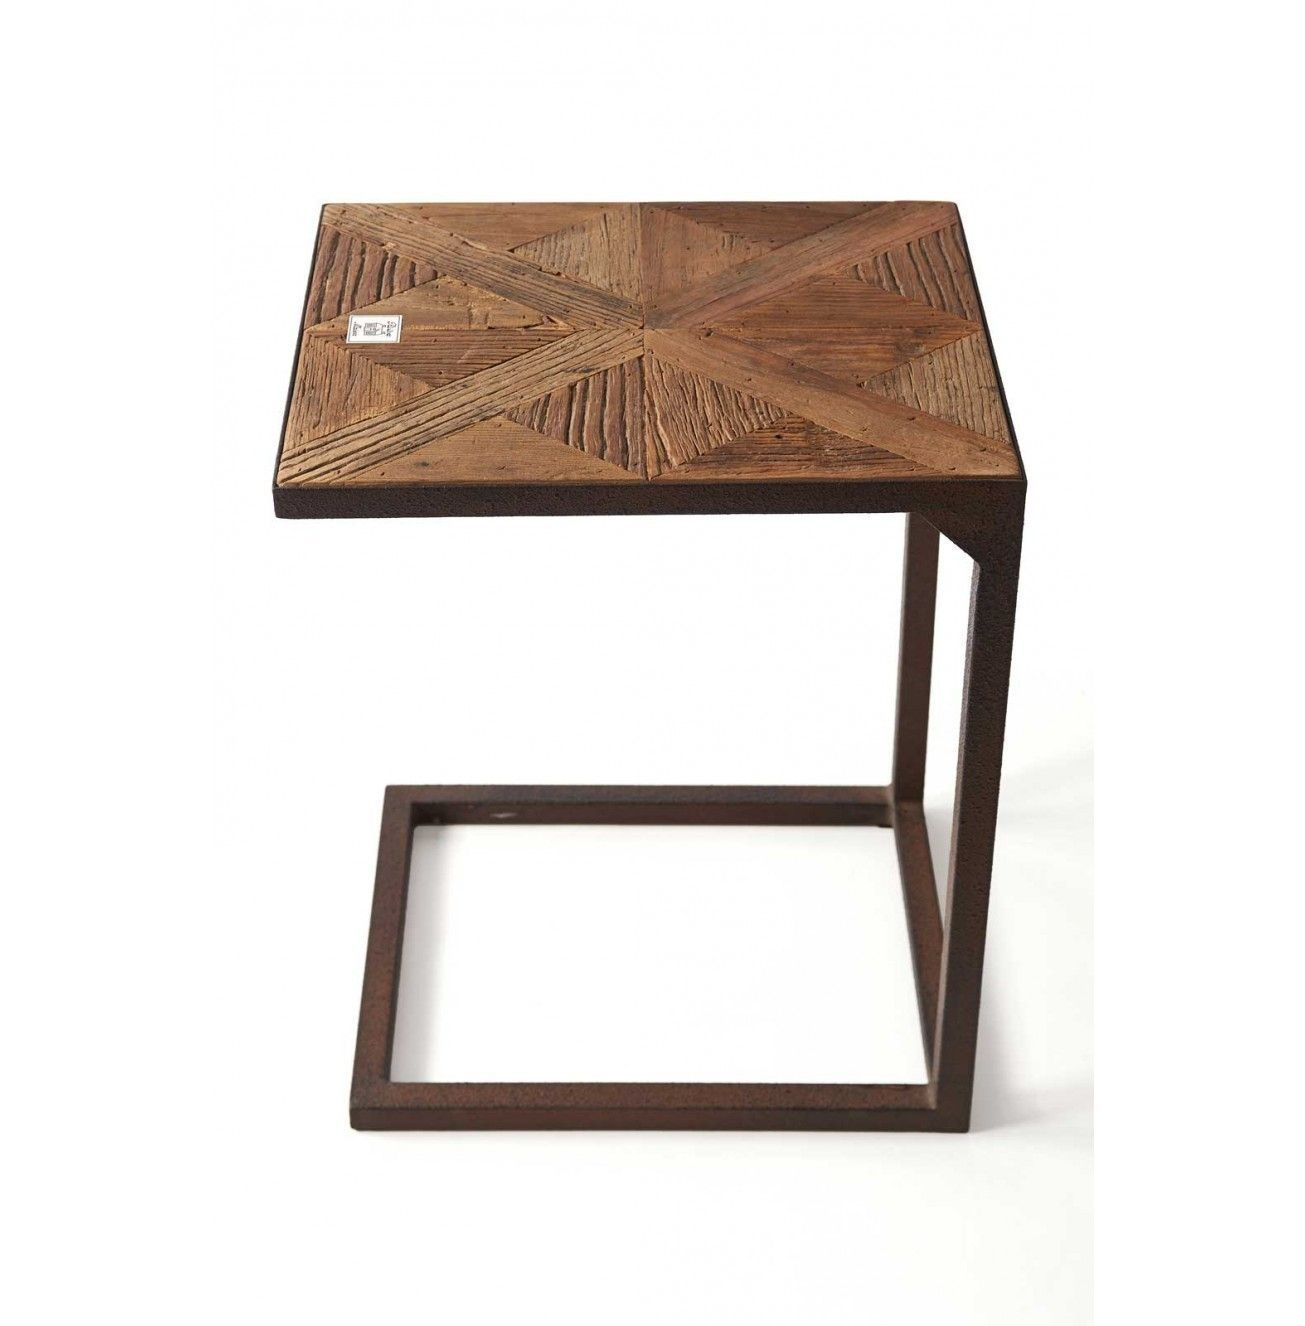 Château Chassigny Sofa Table 45 x 35cm